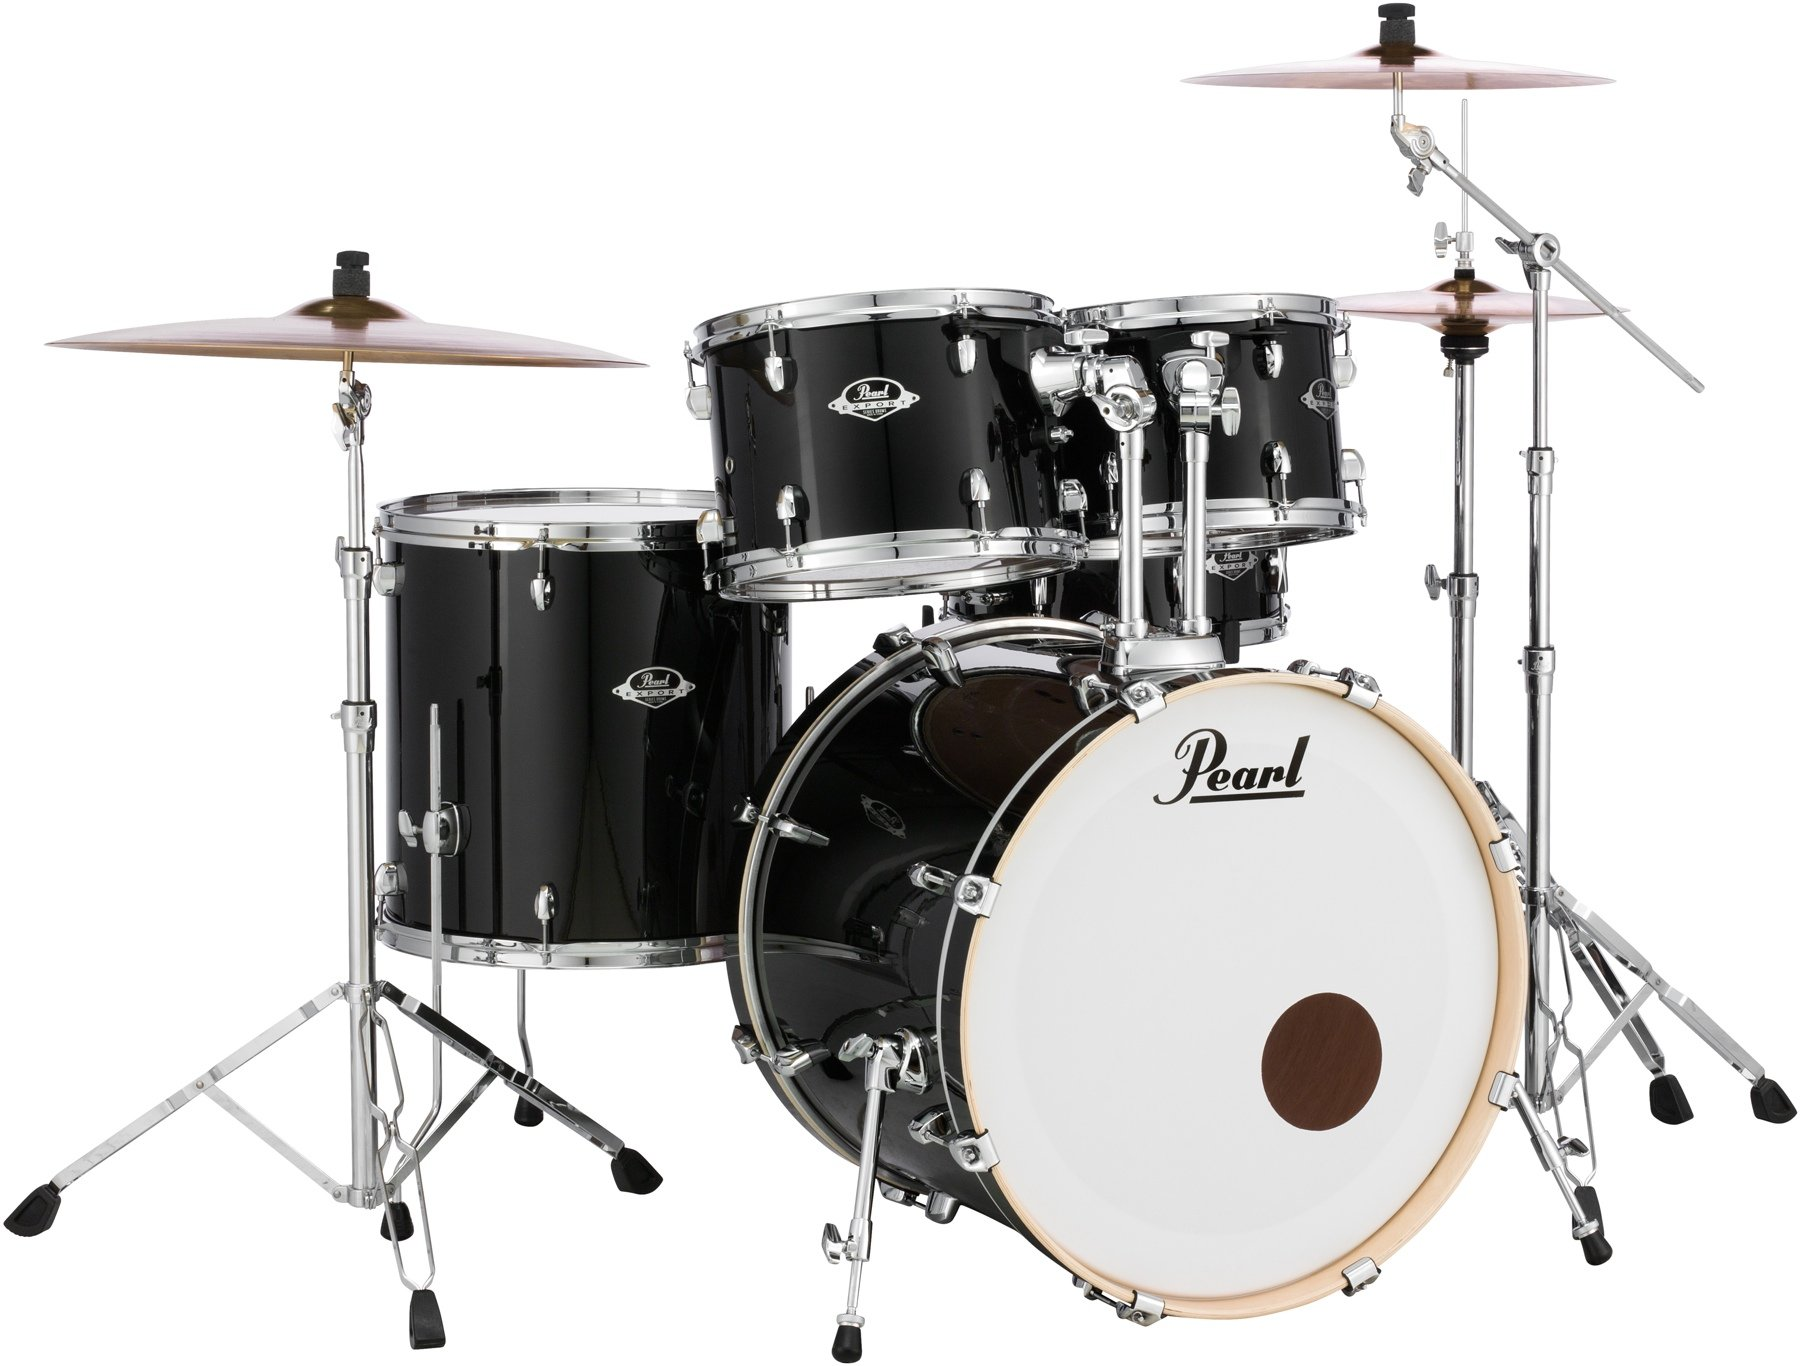 Pearl Export EXX 8 piece Double Bass Drum Set with Hardware   Jet     Pearl Export EXX 5 Piece Drum Set With Hardware   Standard Configuration    Jet Black